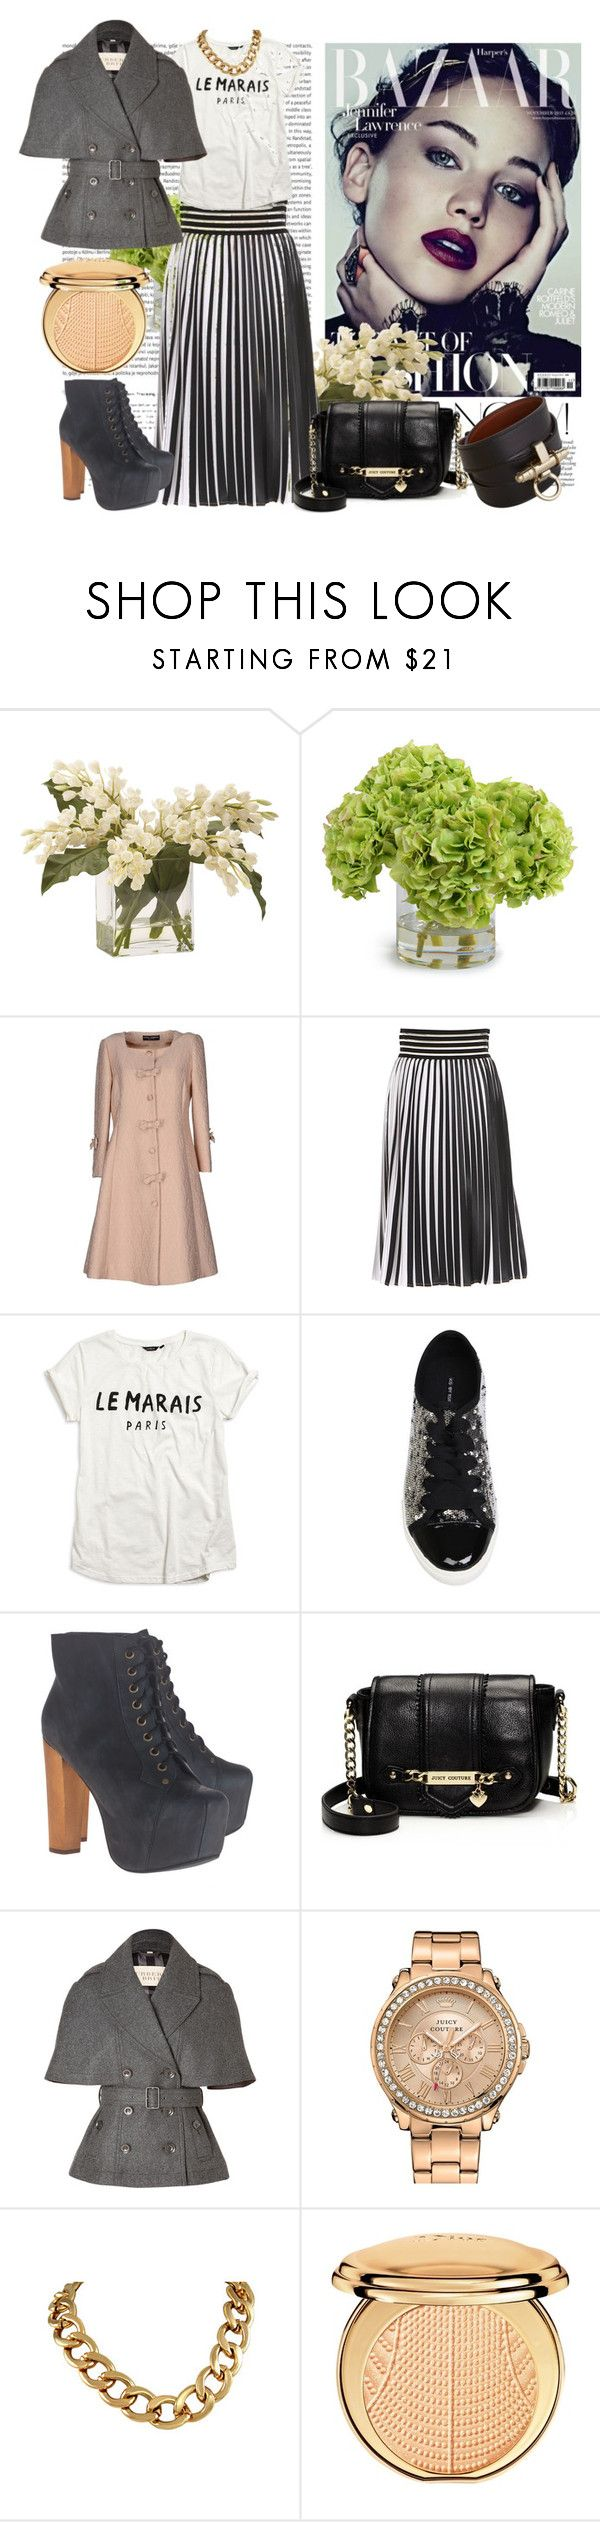 """""""SIMPLICITY...."""" by eiliana ❤ liked on Polyvore featuring Oris, Ethan Allen, New Growth Designs, Dolce&Gabbana, Christopher Kane, KG Kurt Geiger, Jeffrey Campbell, Juicy Couture, Burberry and Christian Dior"""